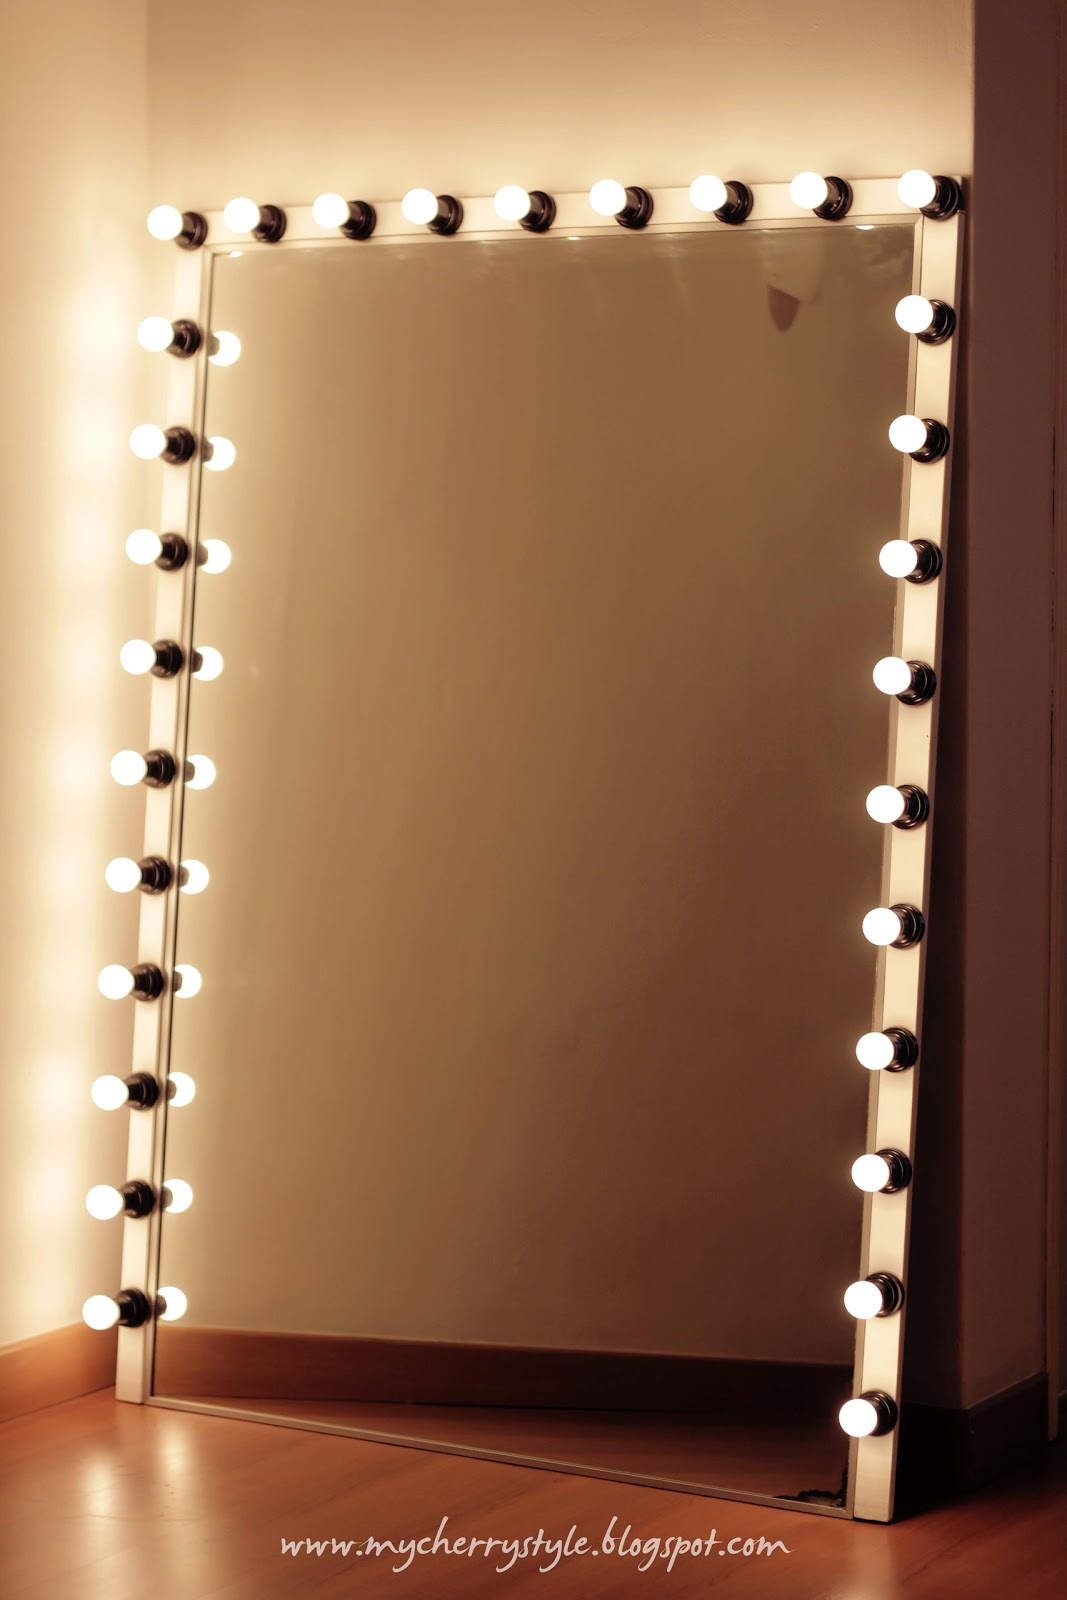 Vanity Mirror With Lights Hollywood Style : DIY Hollywood-style mirror with lights! Tutorial from scratch. for real.